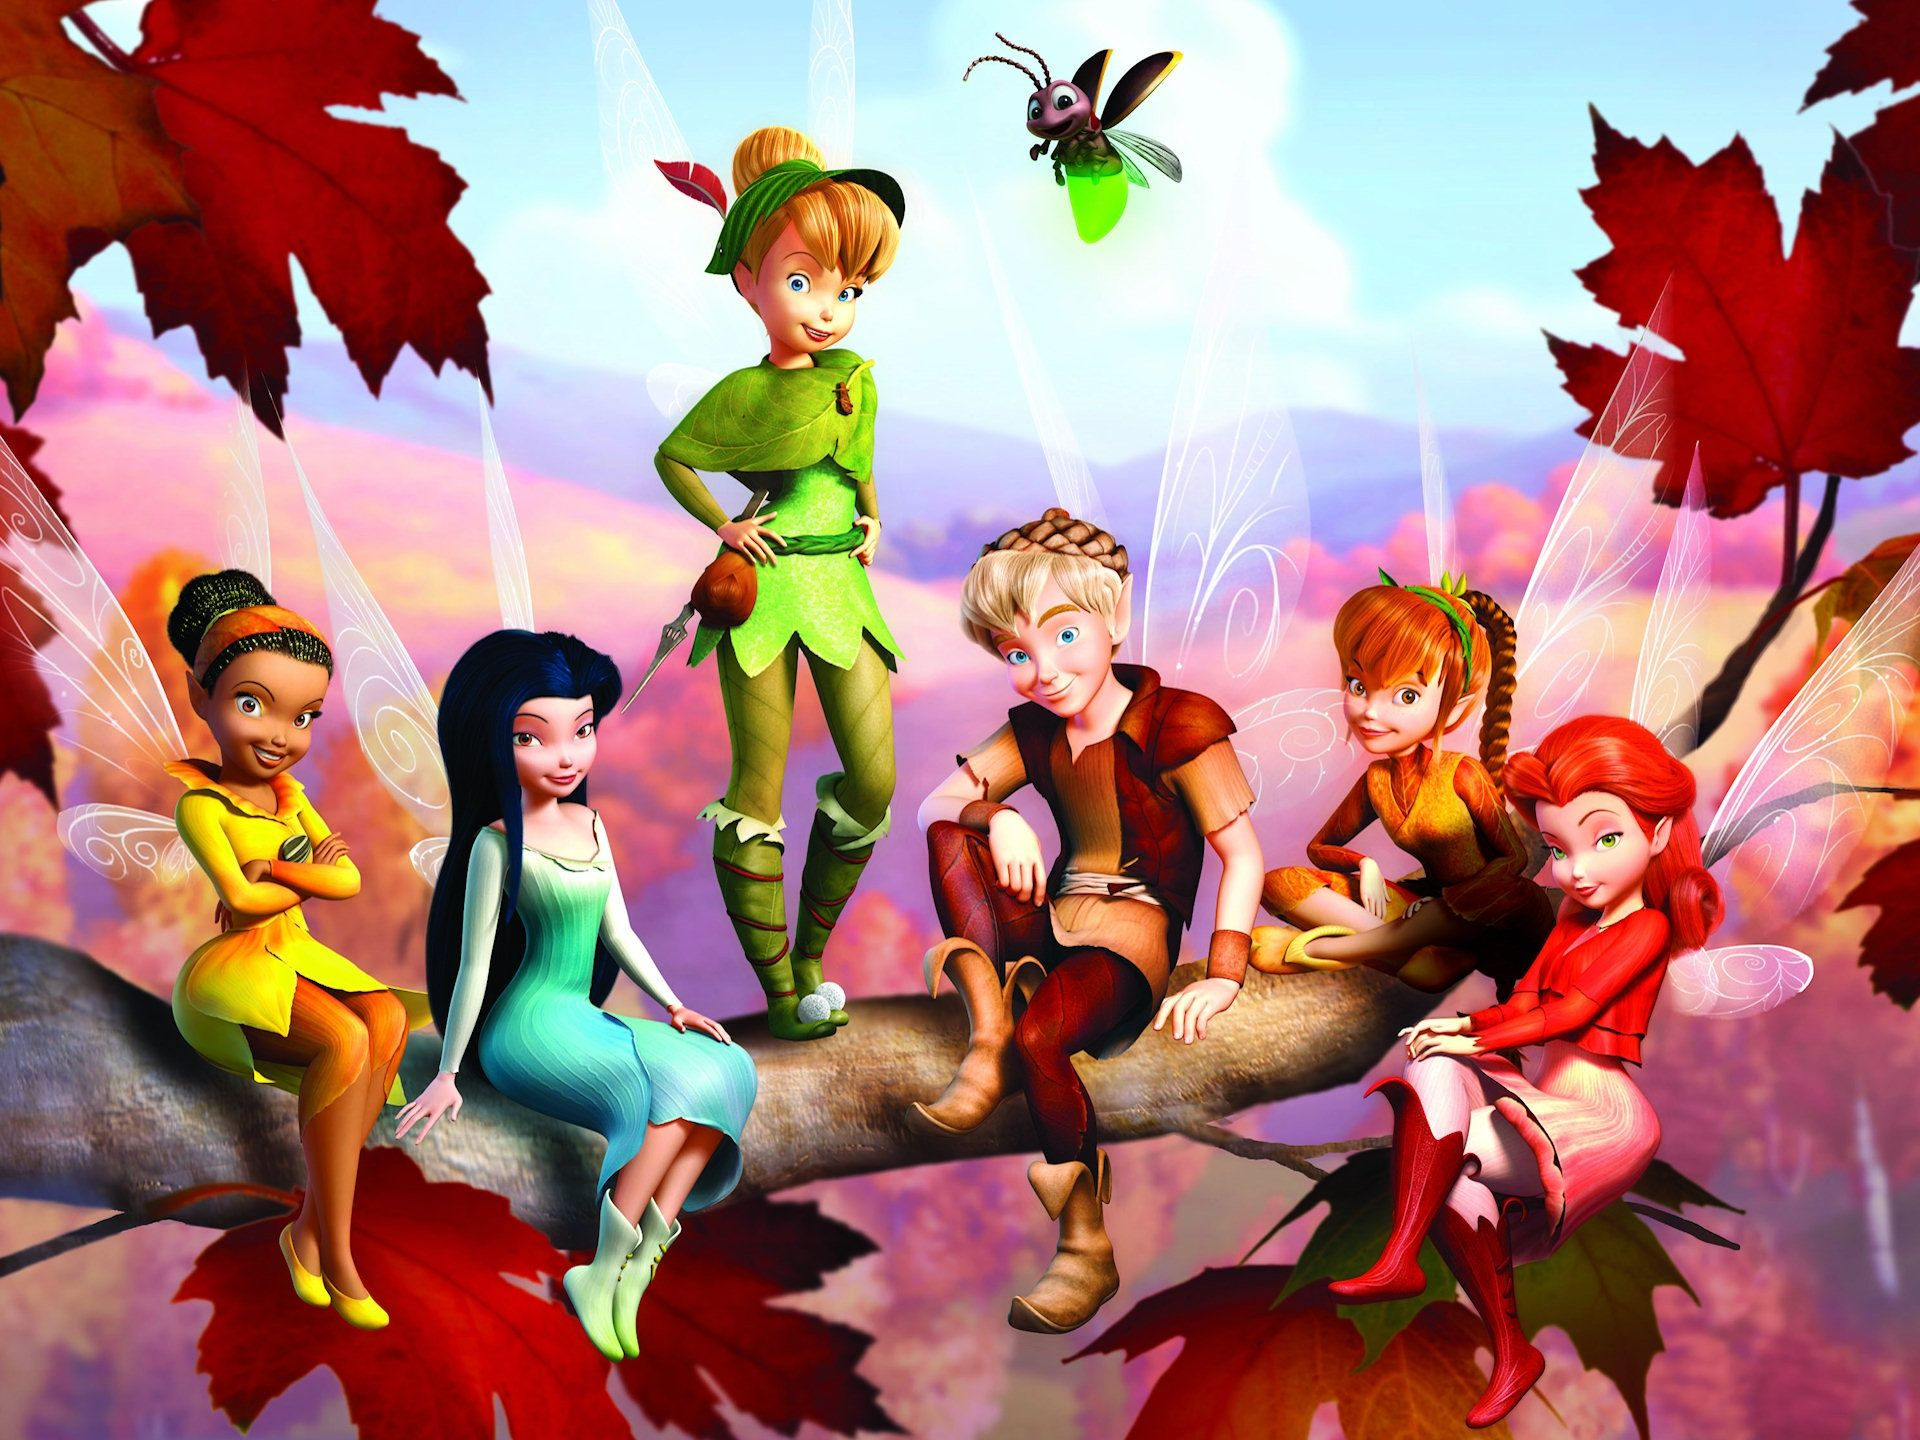 Tinkerbell  Rossetta (nature talent fairy- plants sproutlets)   Silvermist (water talent fairy-puts dew on spiderwebs)  Irridessa (light talent fairy-makes rainbows/lights fireflys)   fawn (helps birds learn how to fly)  and Terrence (fairy dust keeper).